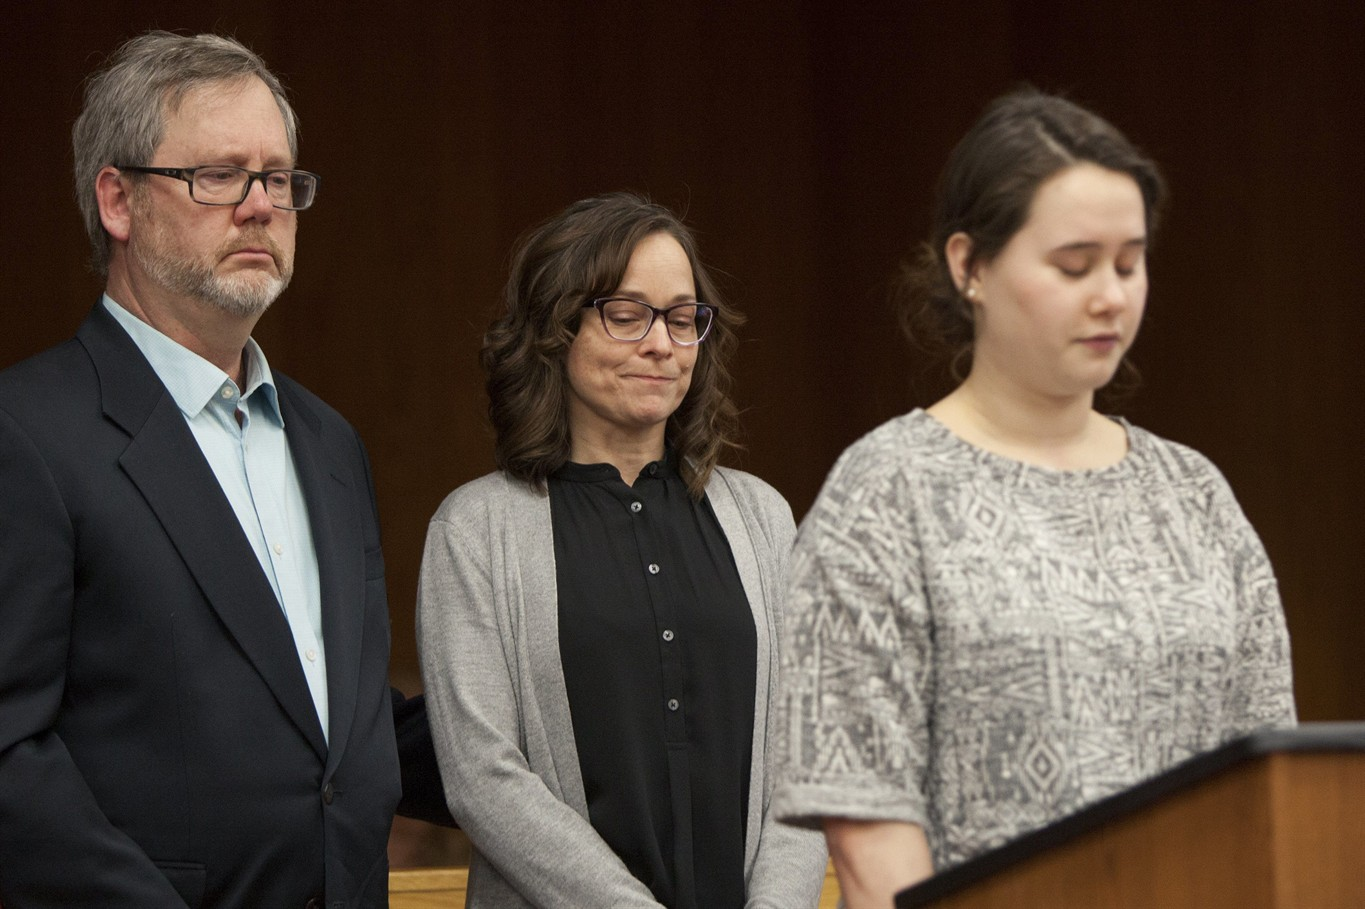 Distraught father tries to attack Nassar in court